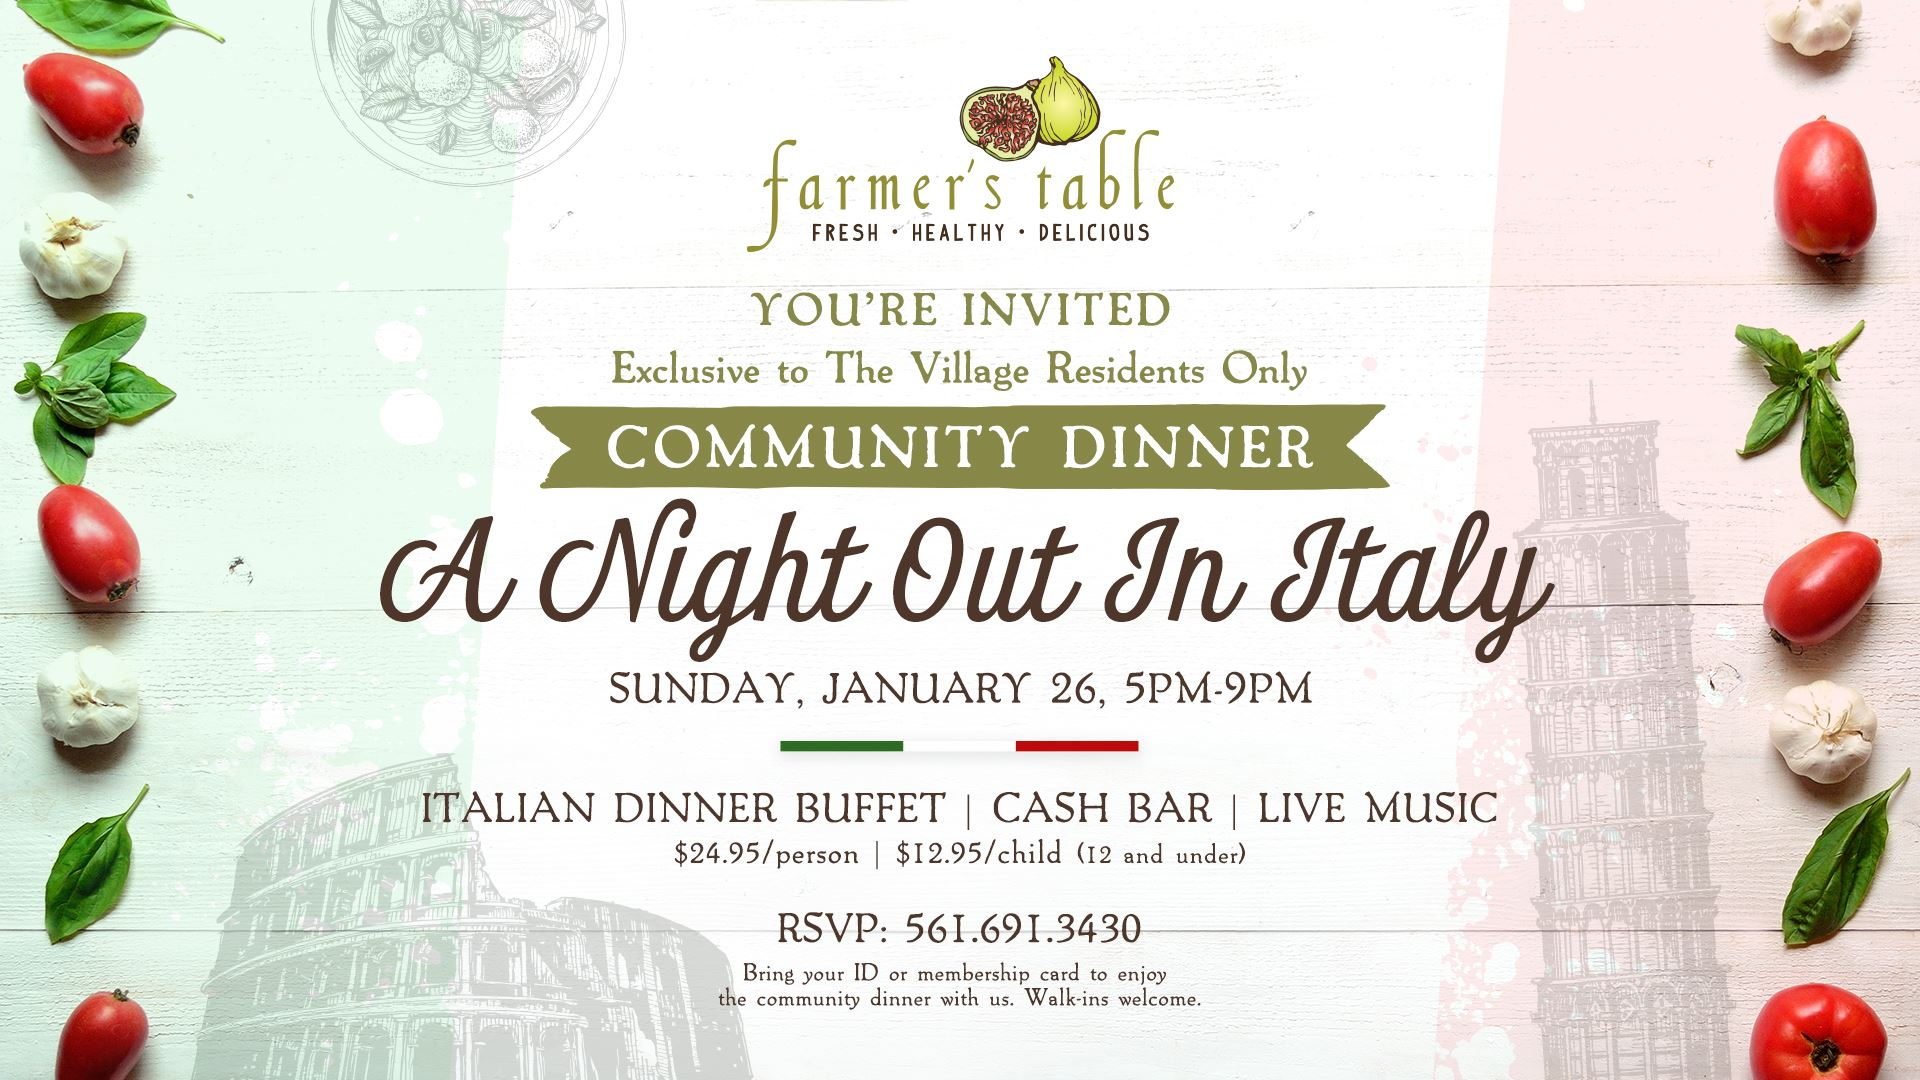 Farmer's Table ad announcing Italian Night Dinner for $24.95 on January 26